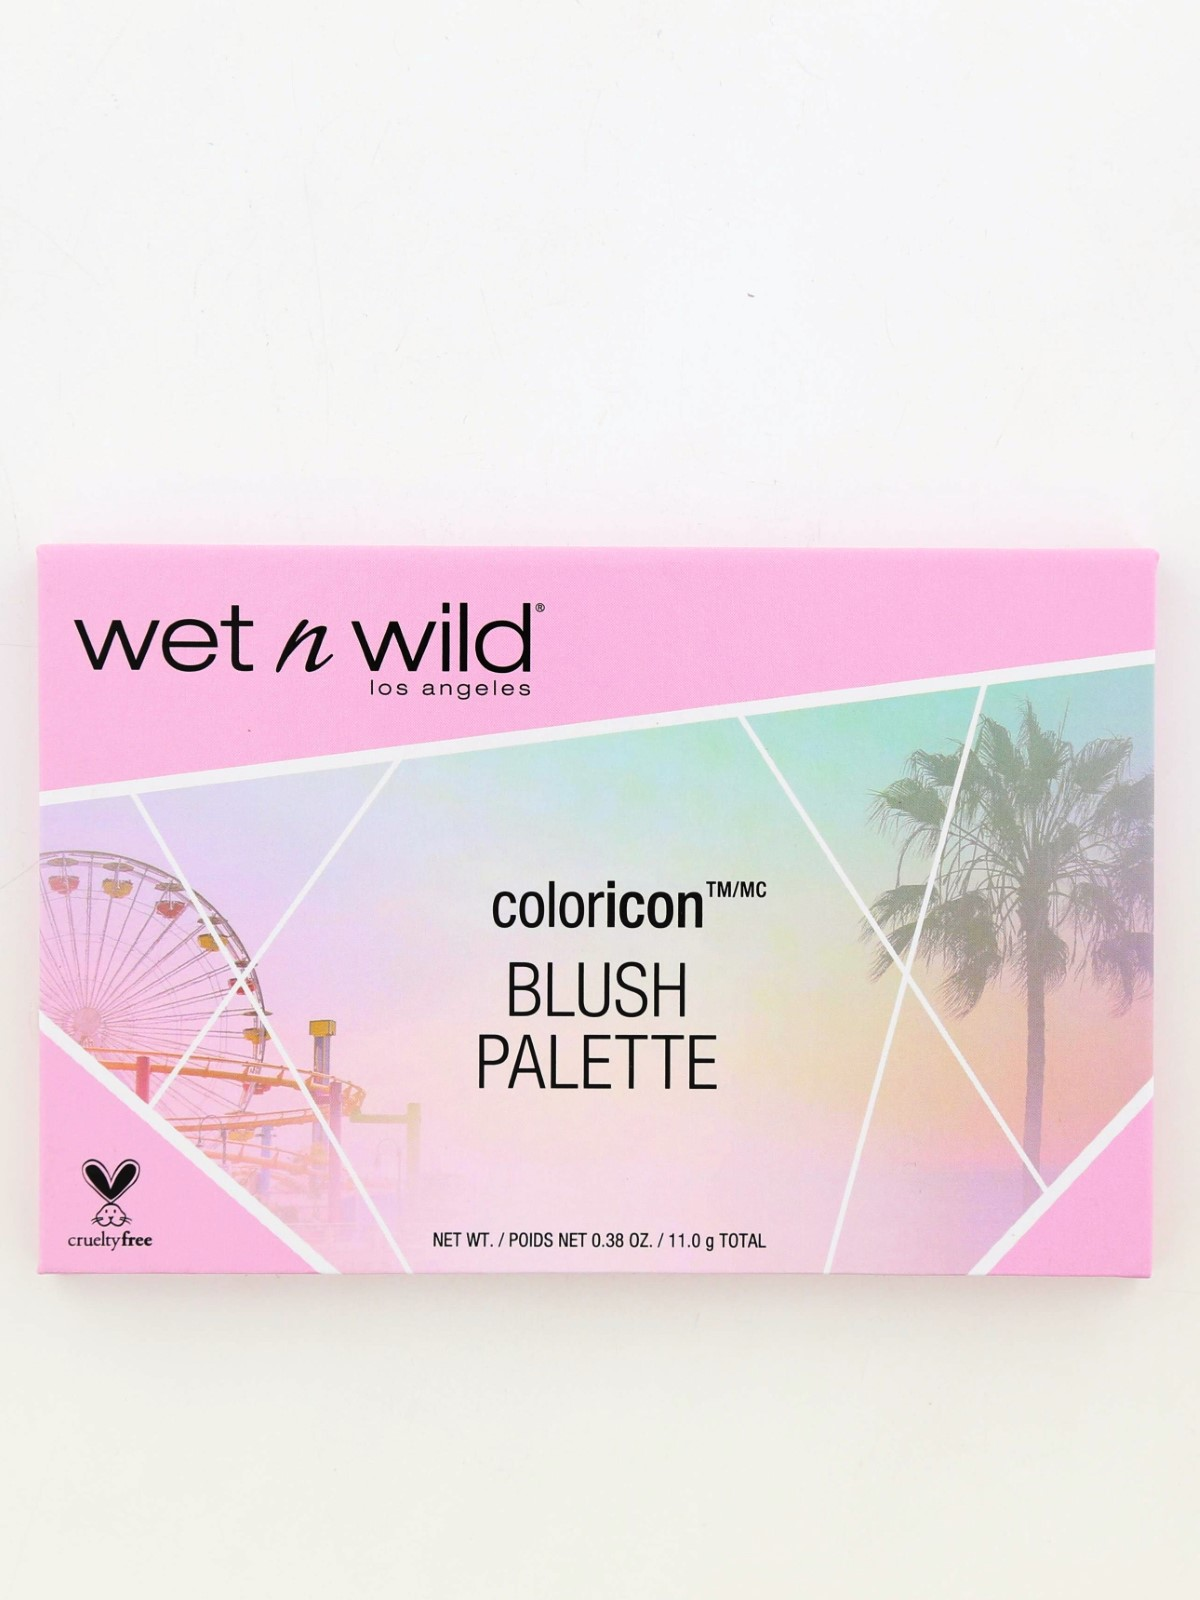 Wet N Wild Blush Palette